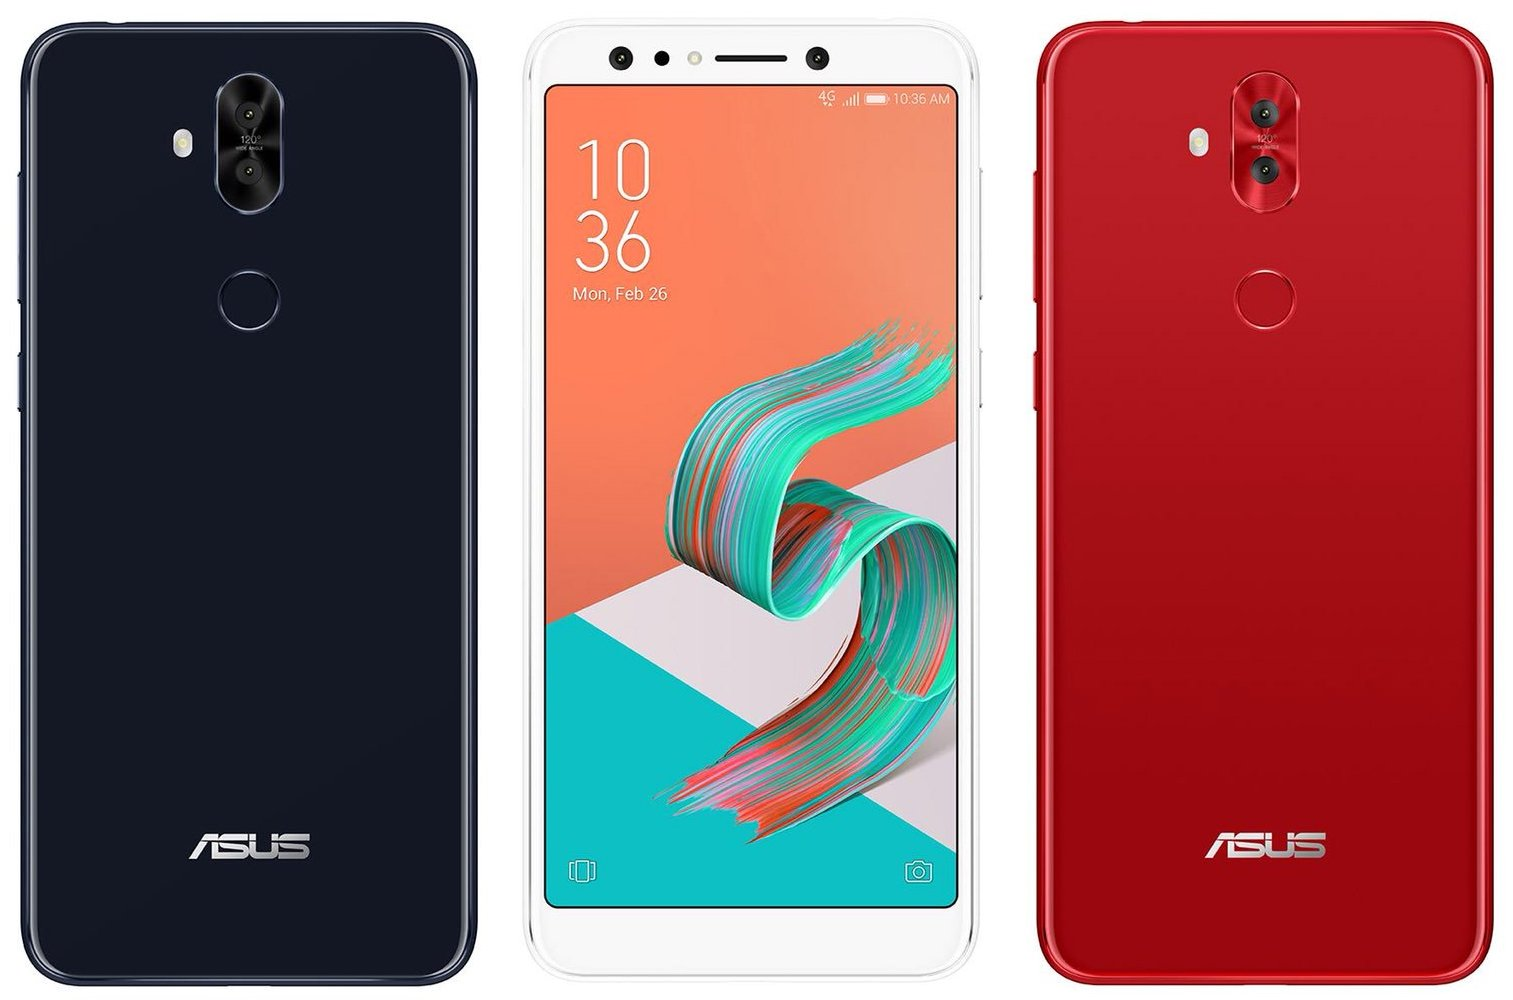 [UPDATE - SPECS] This is the Asus Zenfone 5 Lite with four cameras & 18:9 display 1